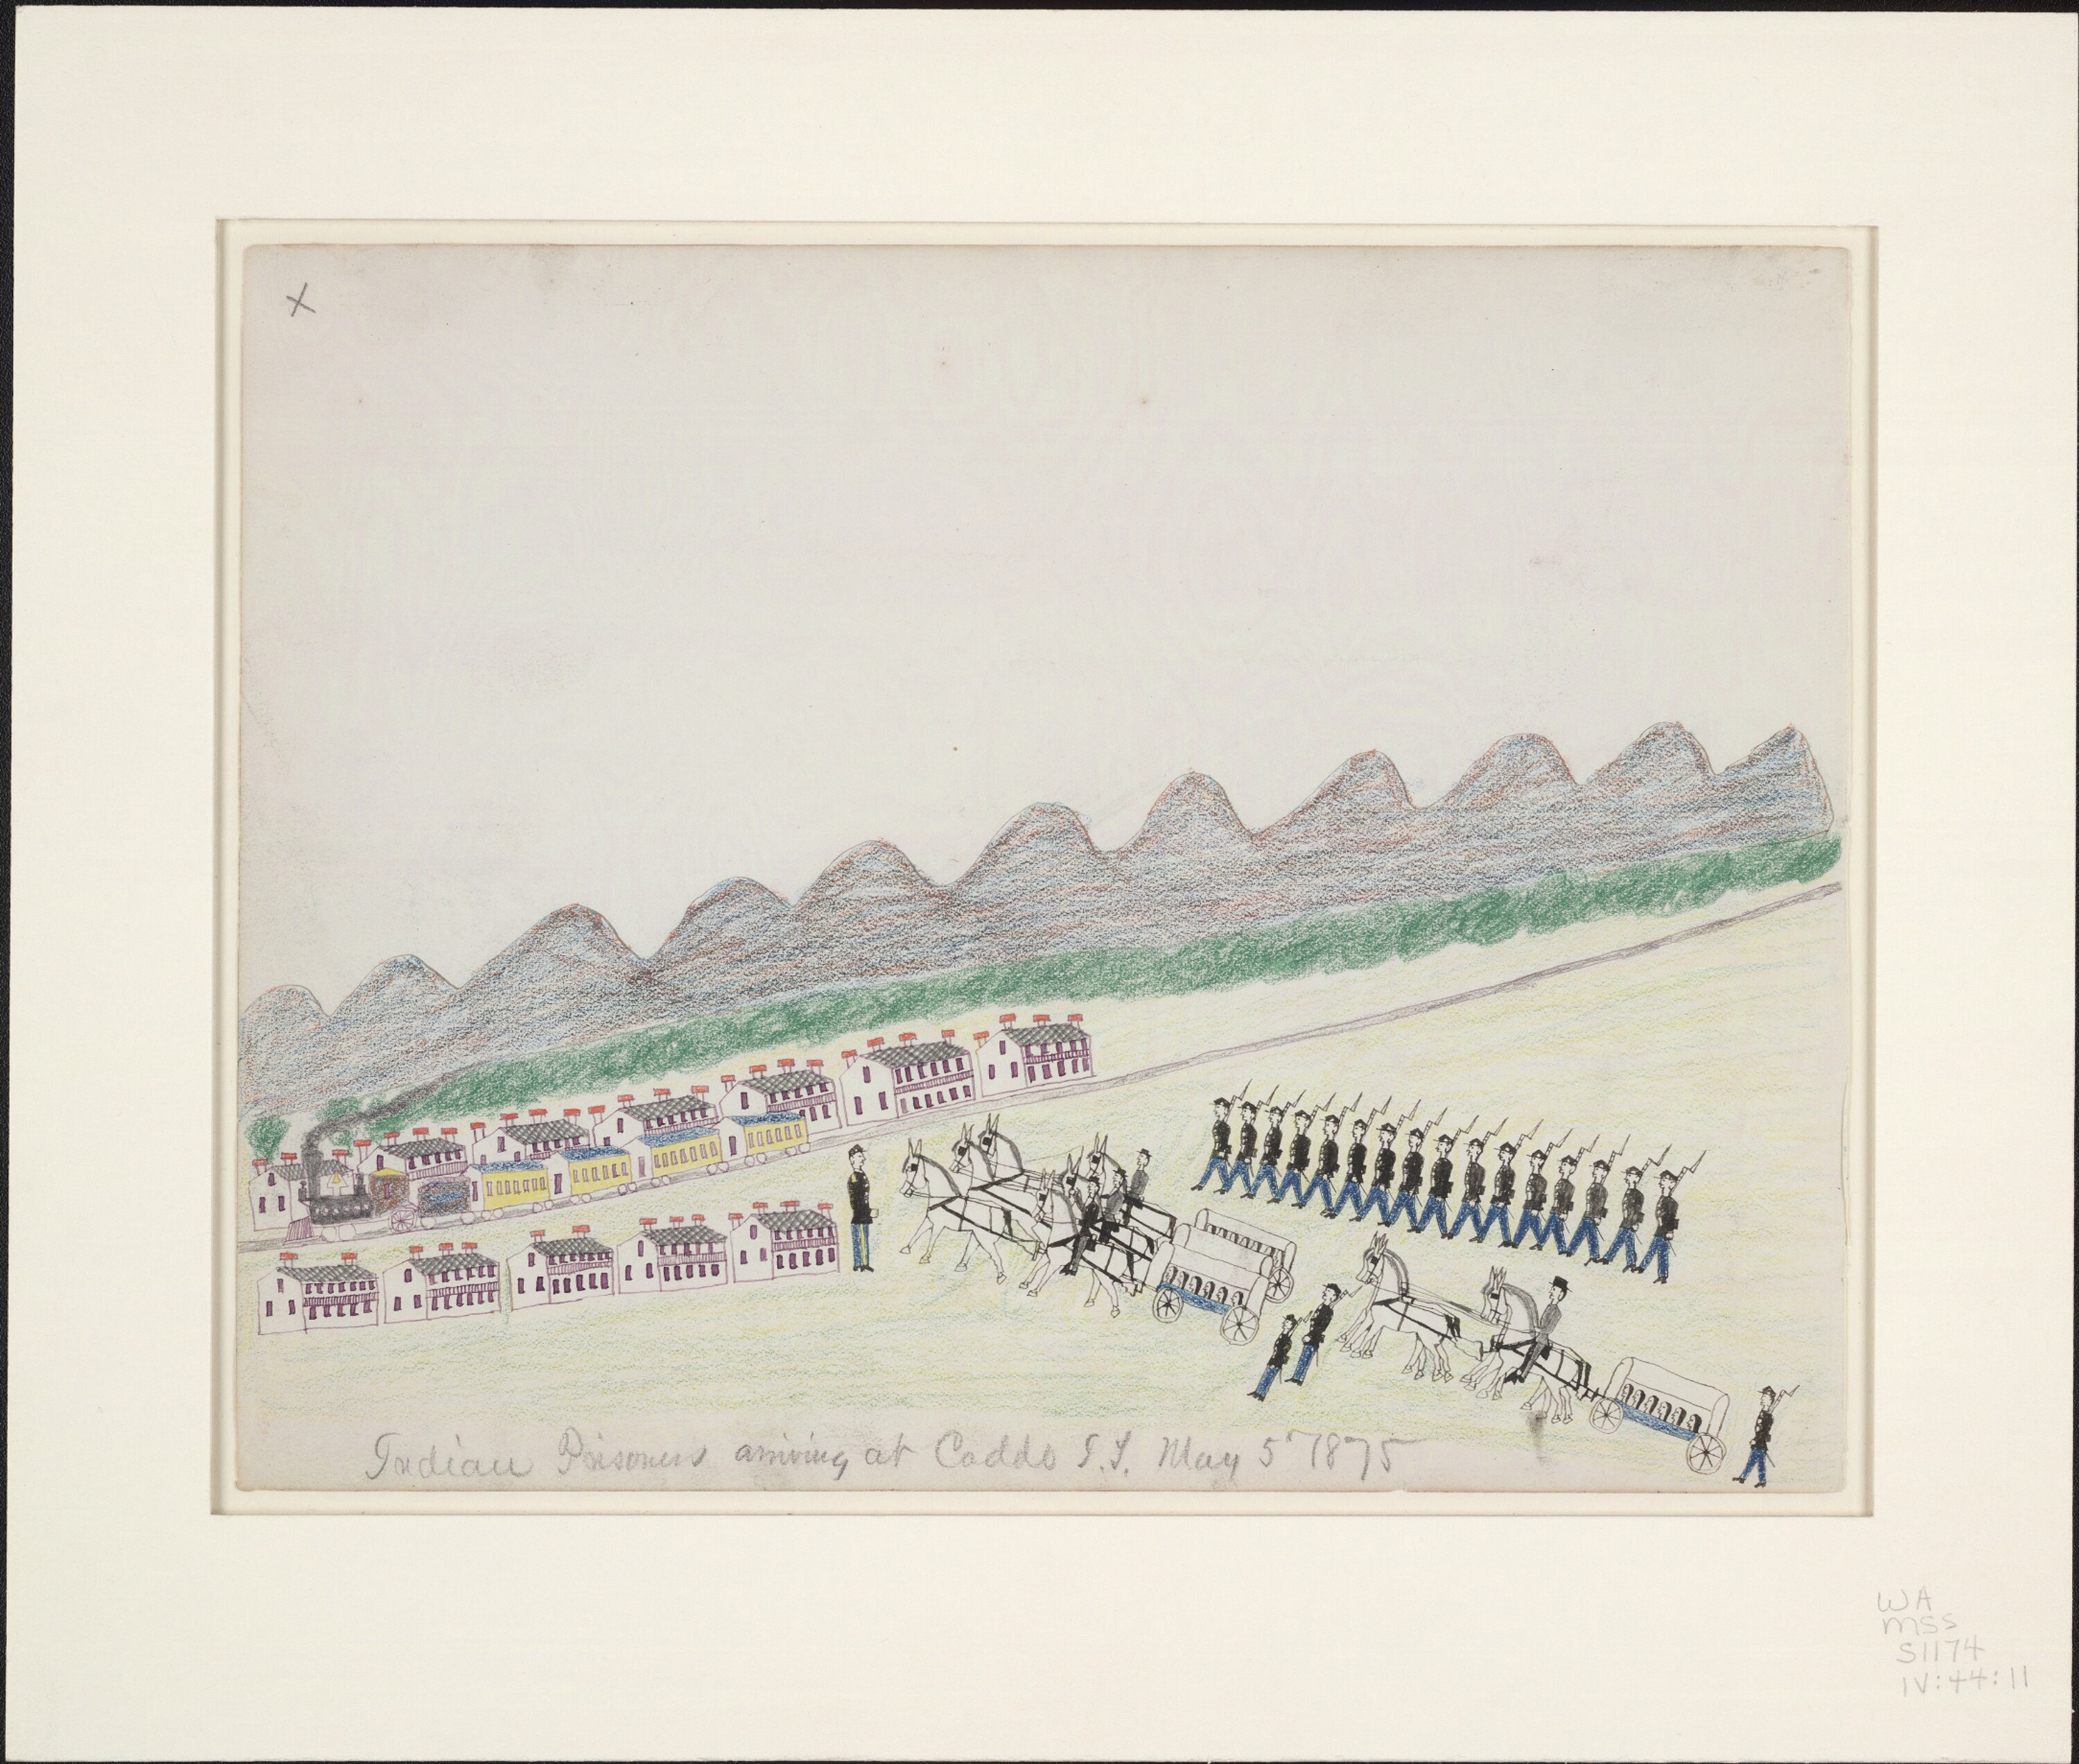 Color pencil drawing of Indian prisoners arriving at Caddo, by Etahdleuh Doanmoe, Beineke Library WA MSS S-1174